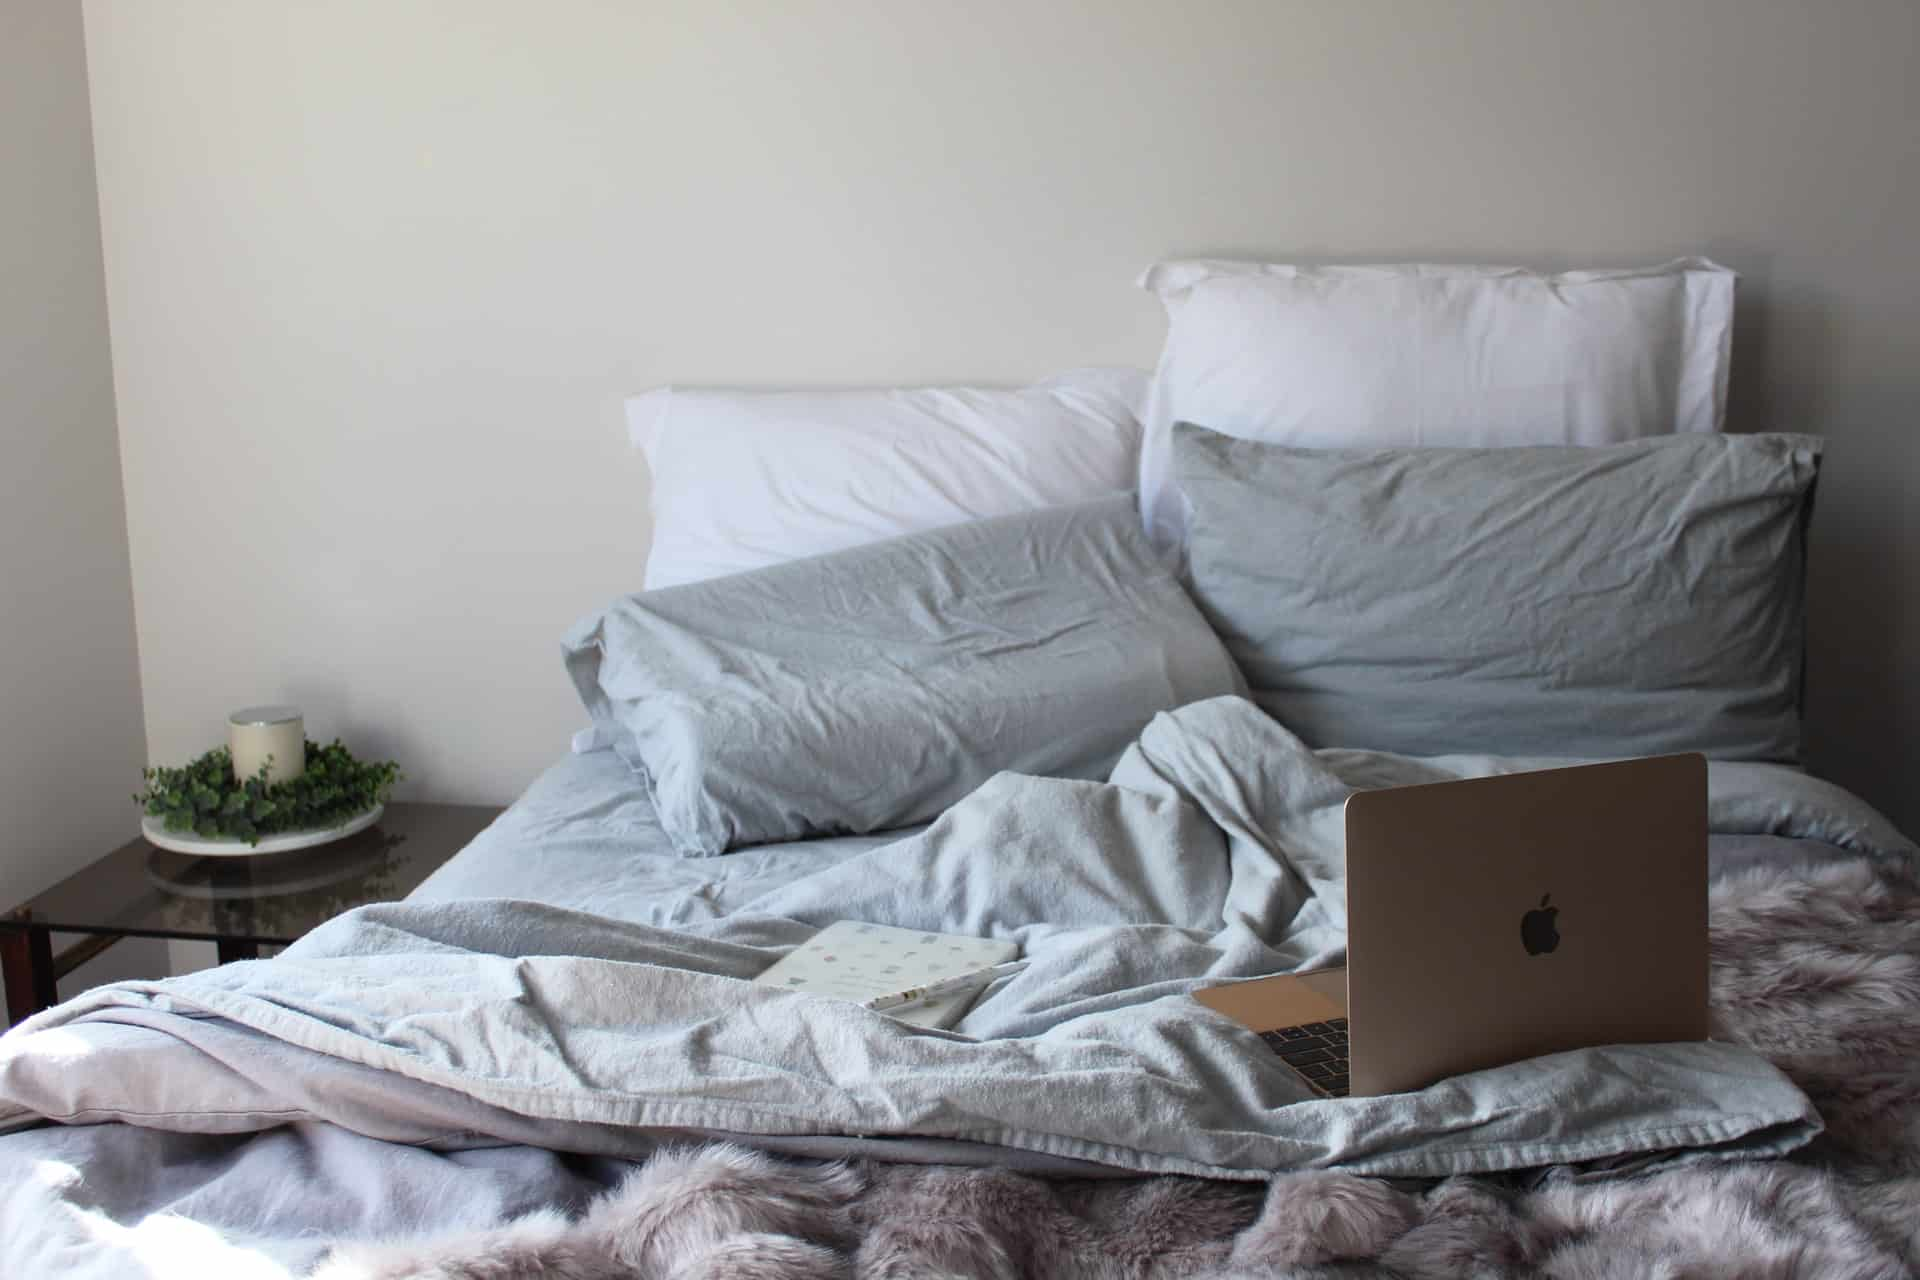 How to Use Your Laptop on the Bed